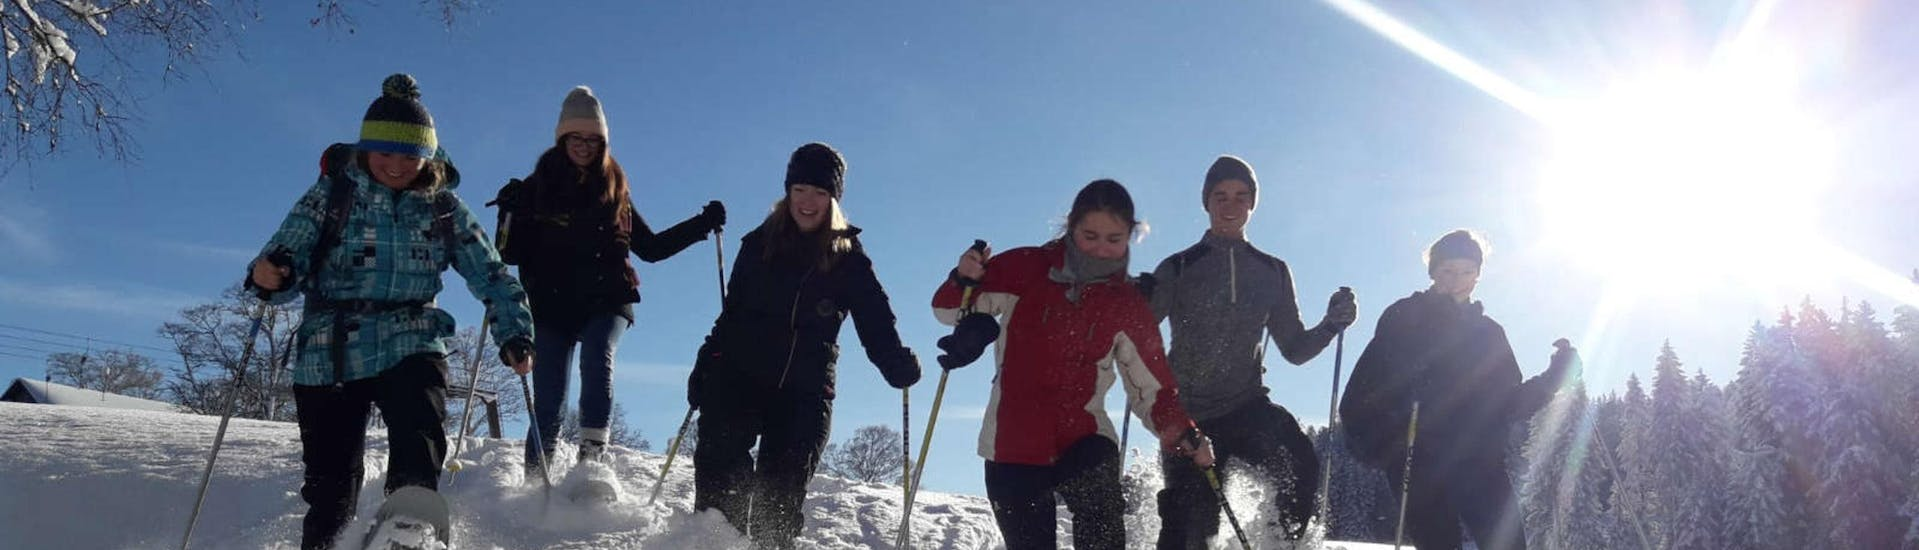 A group of young people is seemingly having fun as they wade through deep powder snow on their private snowshoeing tour with Skischule Schwarzenberg am Bödele.